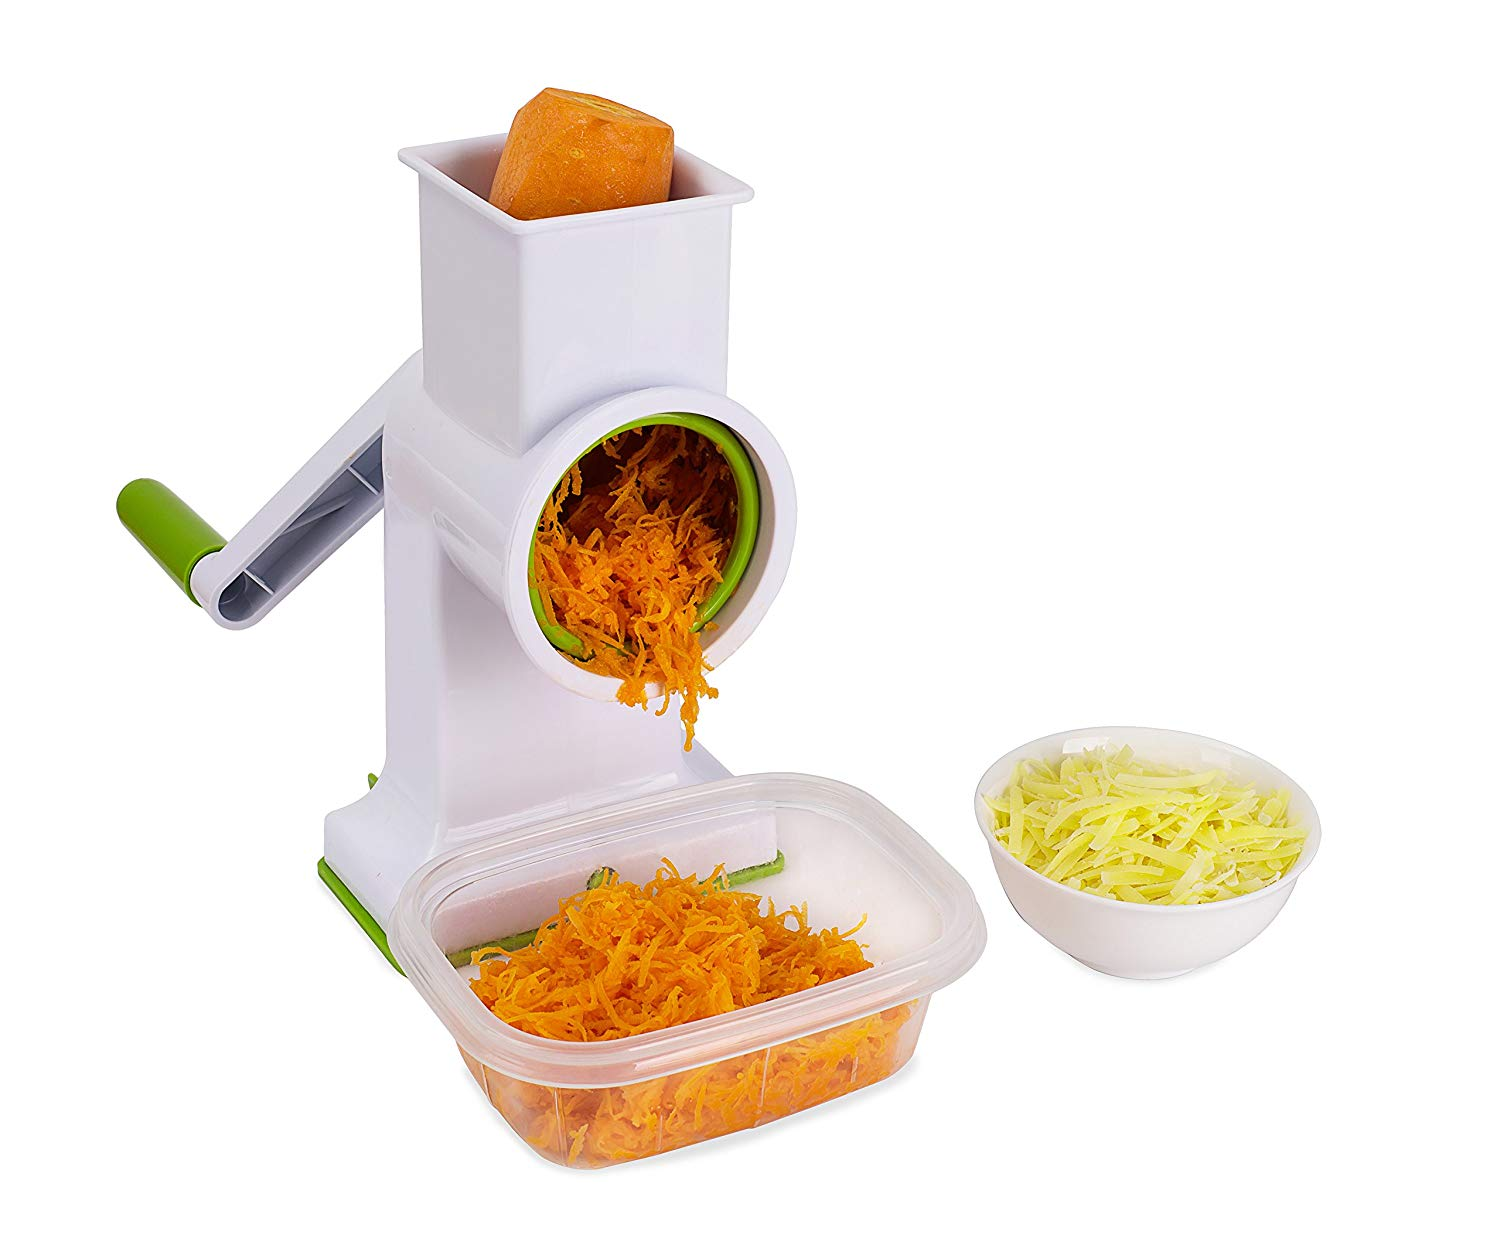 Kuuk drum rotary cheese grater – low cost and razor sharp